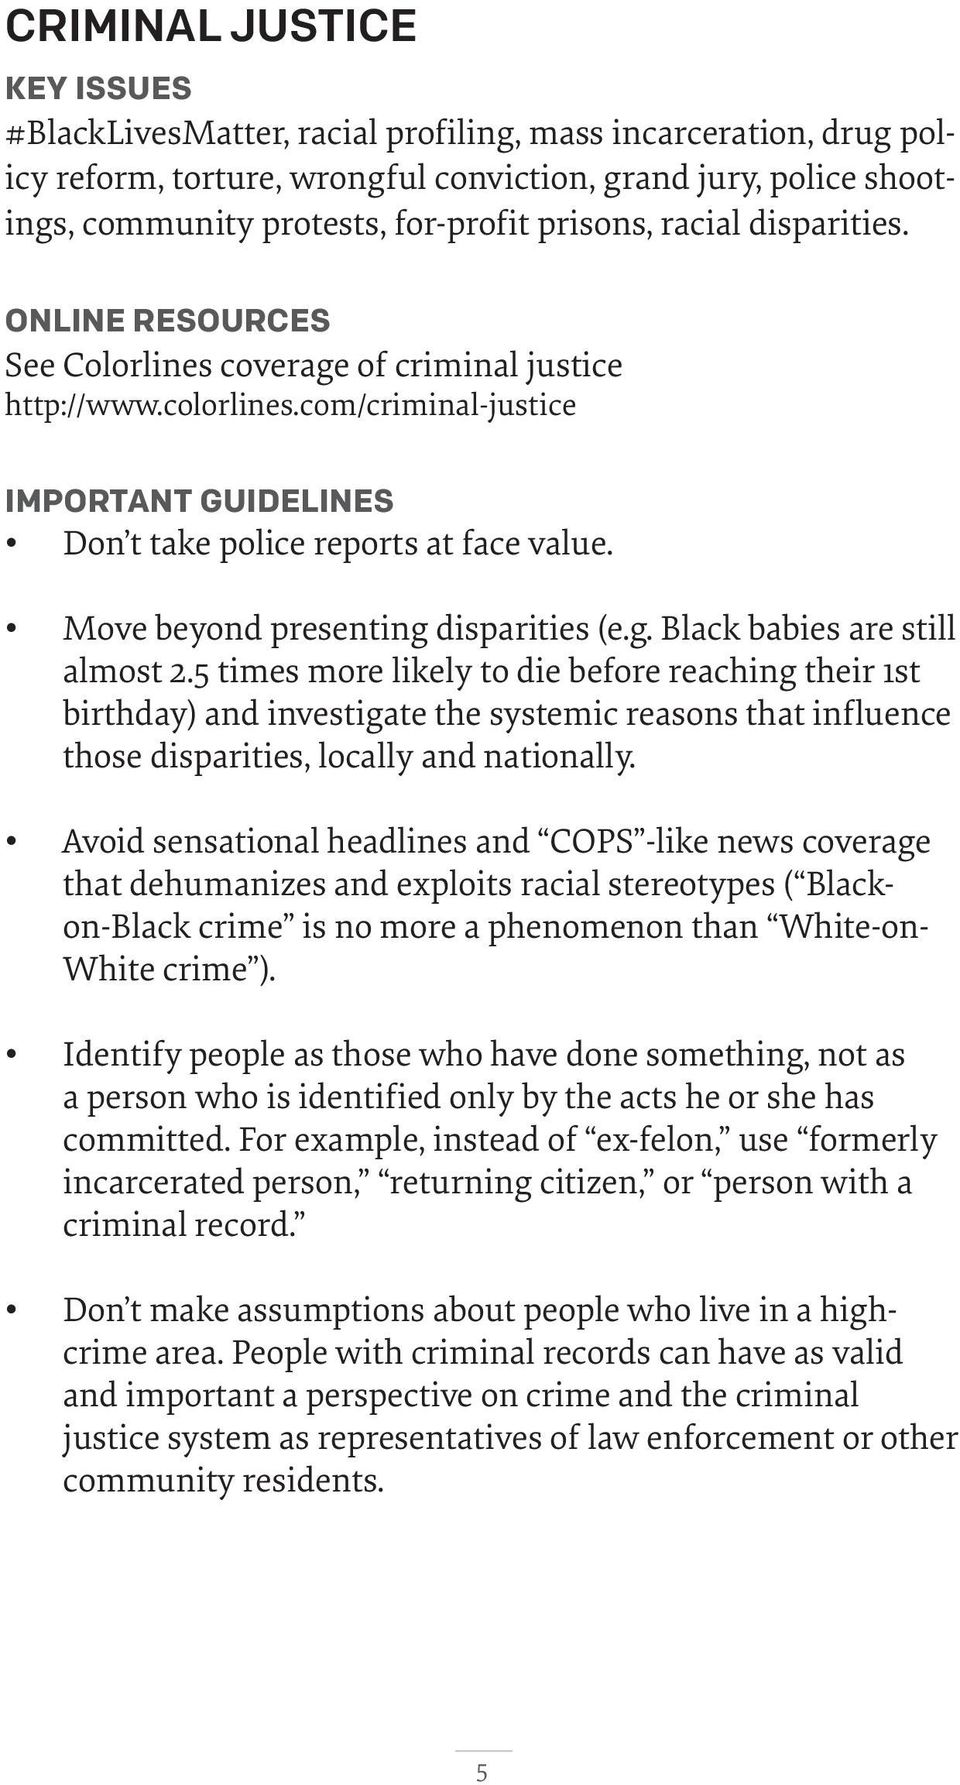 Move beyond presenting disparities (e.g. Black babies are still almost 2.